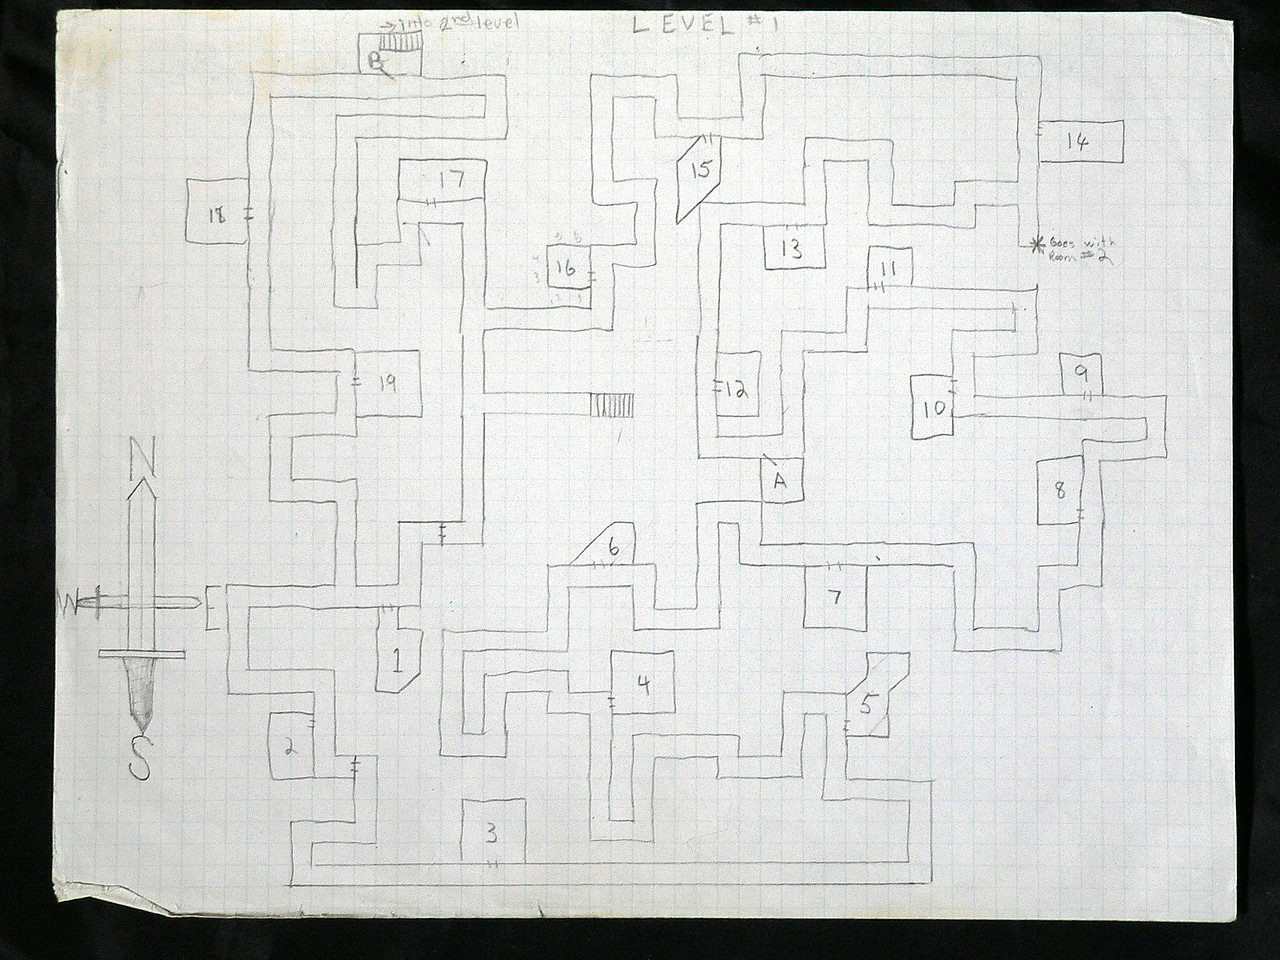 1st level of some dungeon.